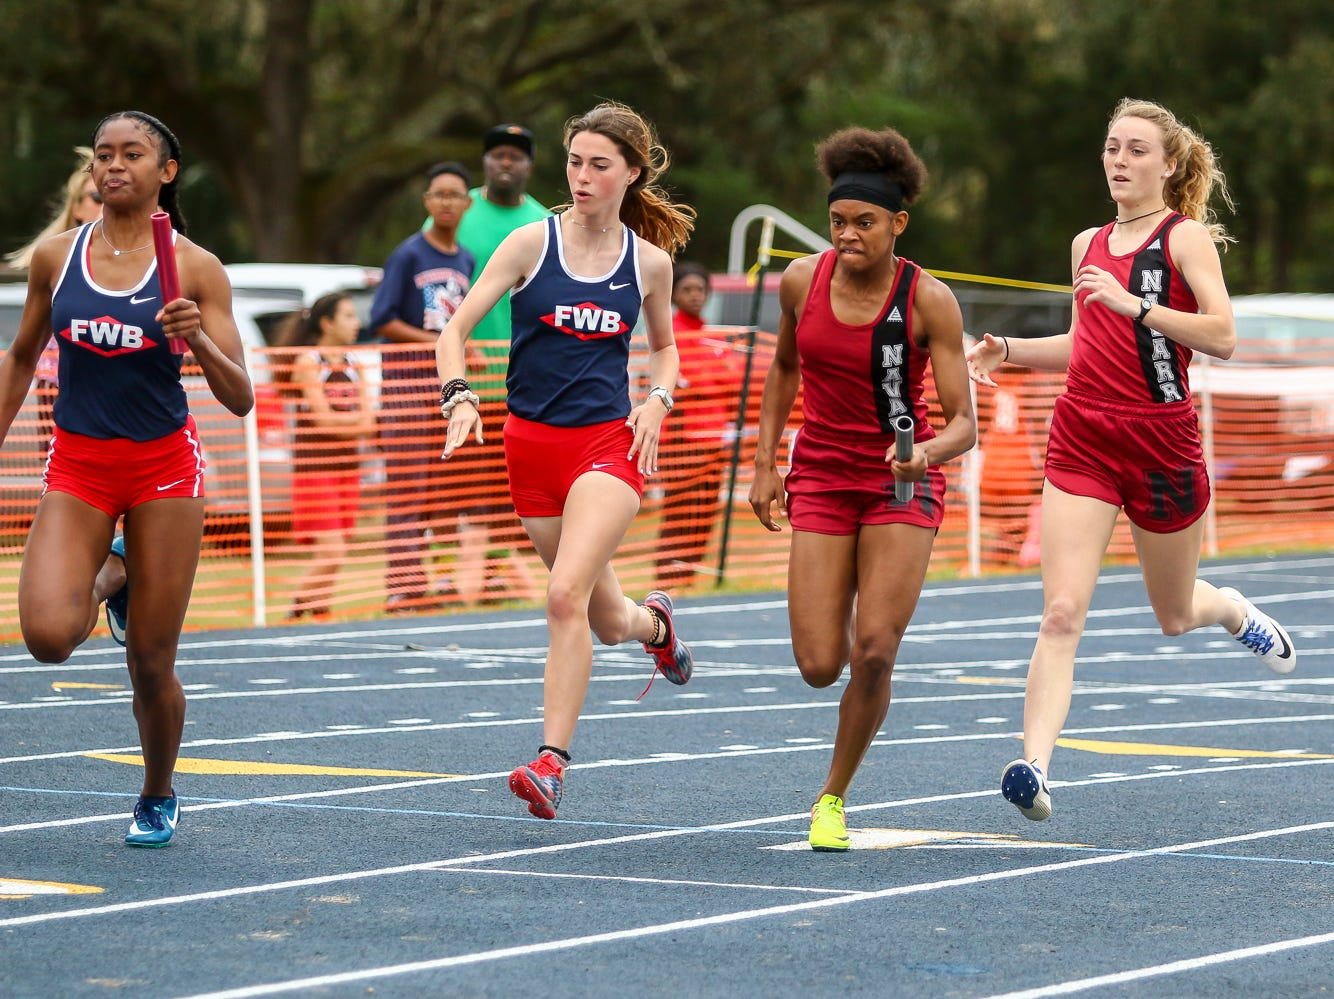 Athletes compete in the 4x100m relay on Saturday, March 9, 2019, during the Aggie Invitational at Washington High School.